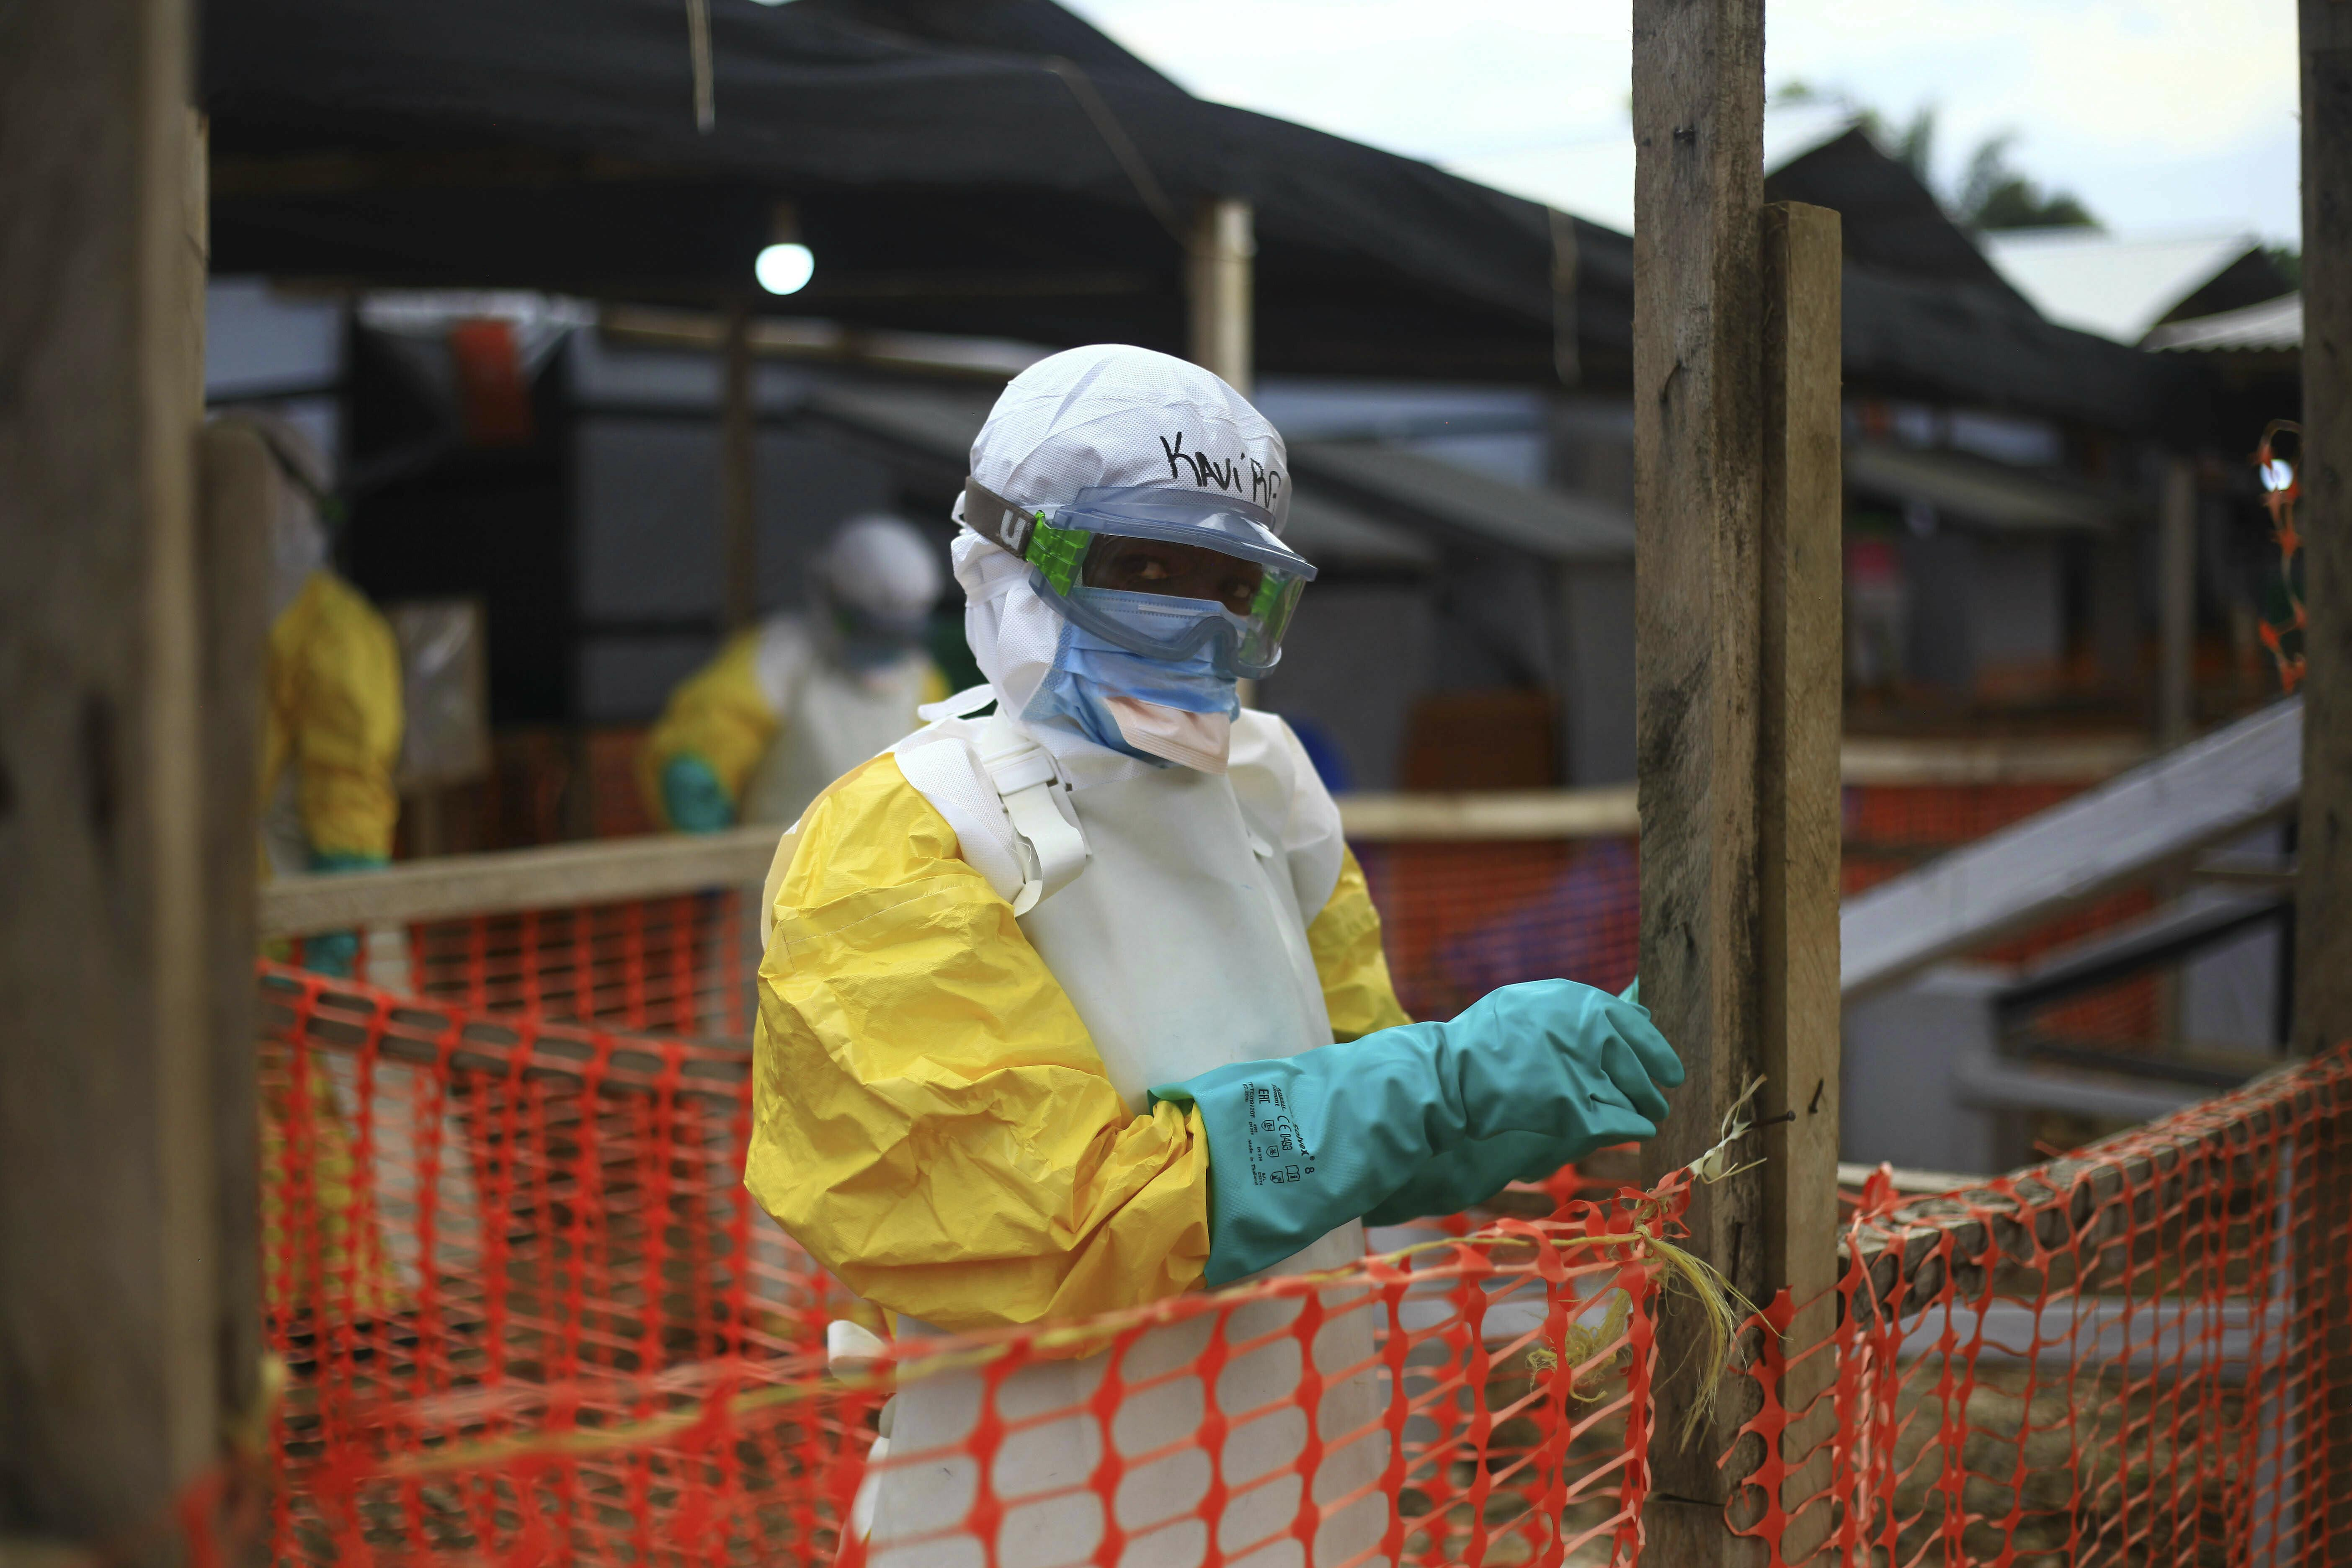 Attackers kill Ebola worker in Democratic Republic of Congo: WHO